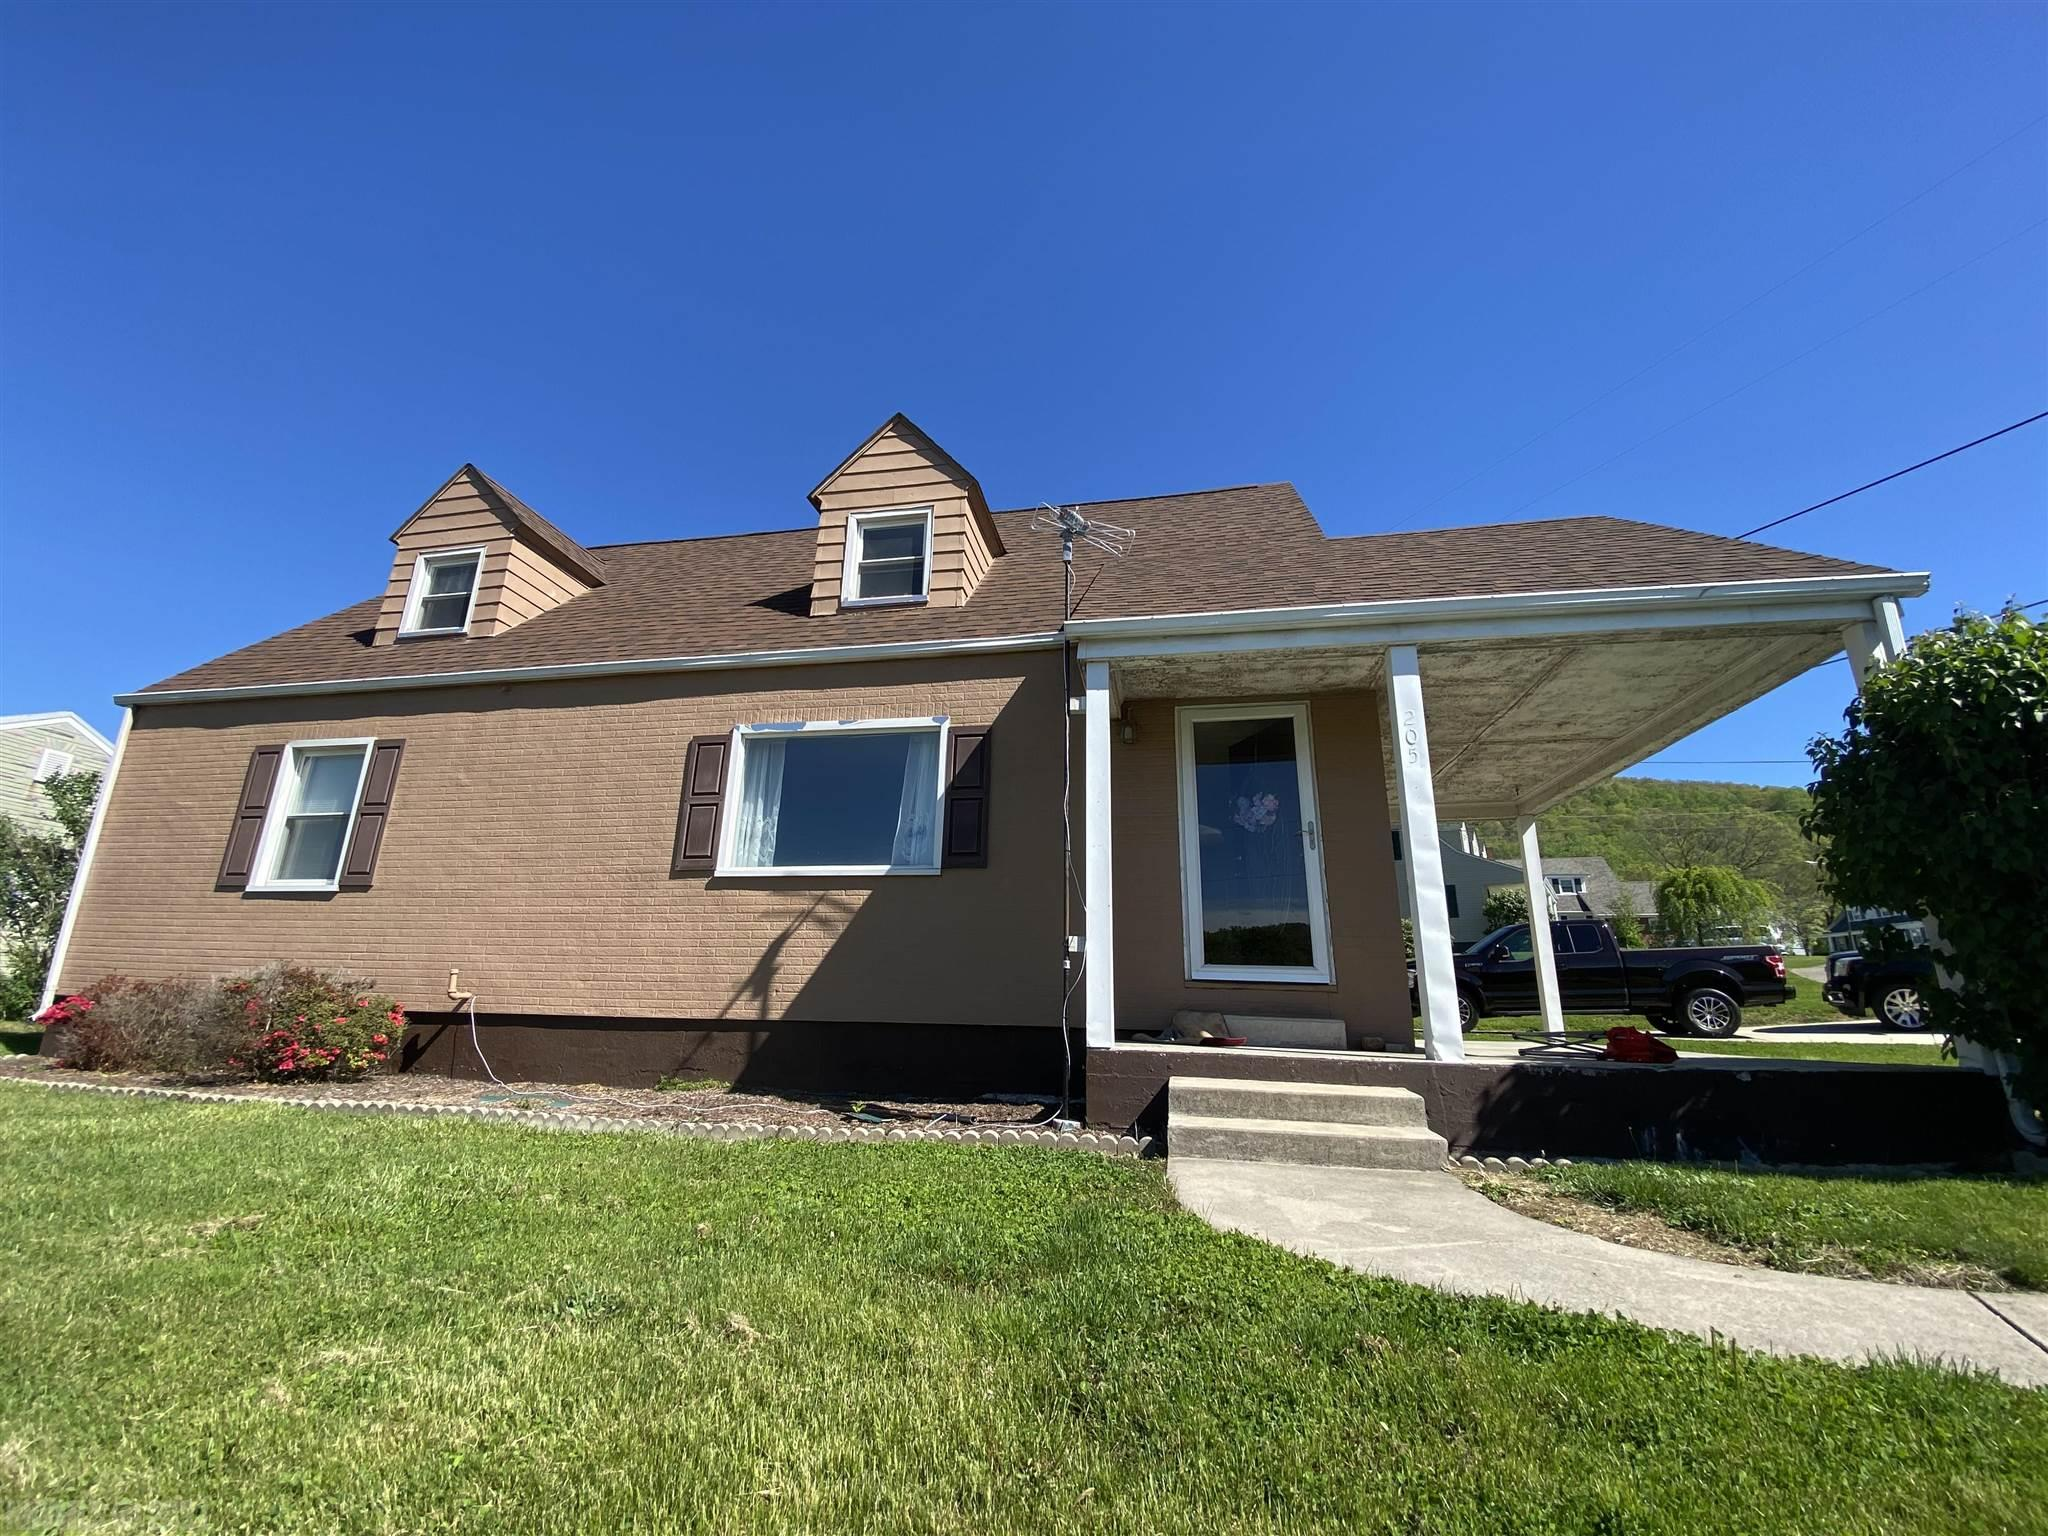 Beautiful 4 bedroom home, move-in ready.  Lovely hardwood floors and a spectacular mountain view from the living room or front patio! Corner lot in desirable Narrows neighborhood. New HVAC, gas furnace and range in 2020. New roof in 2011!  So much charm, this one is a must see!